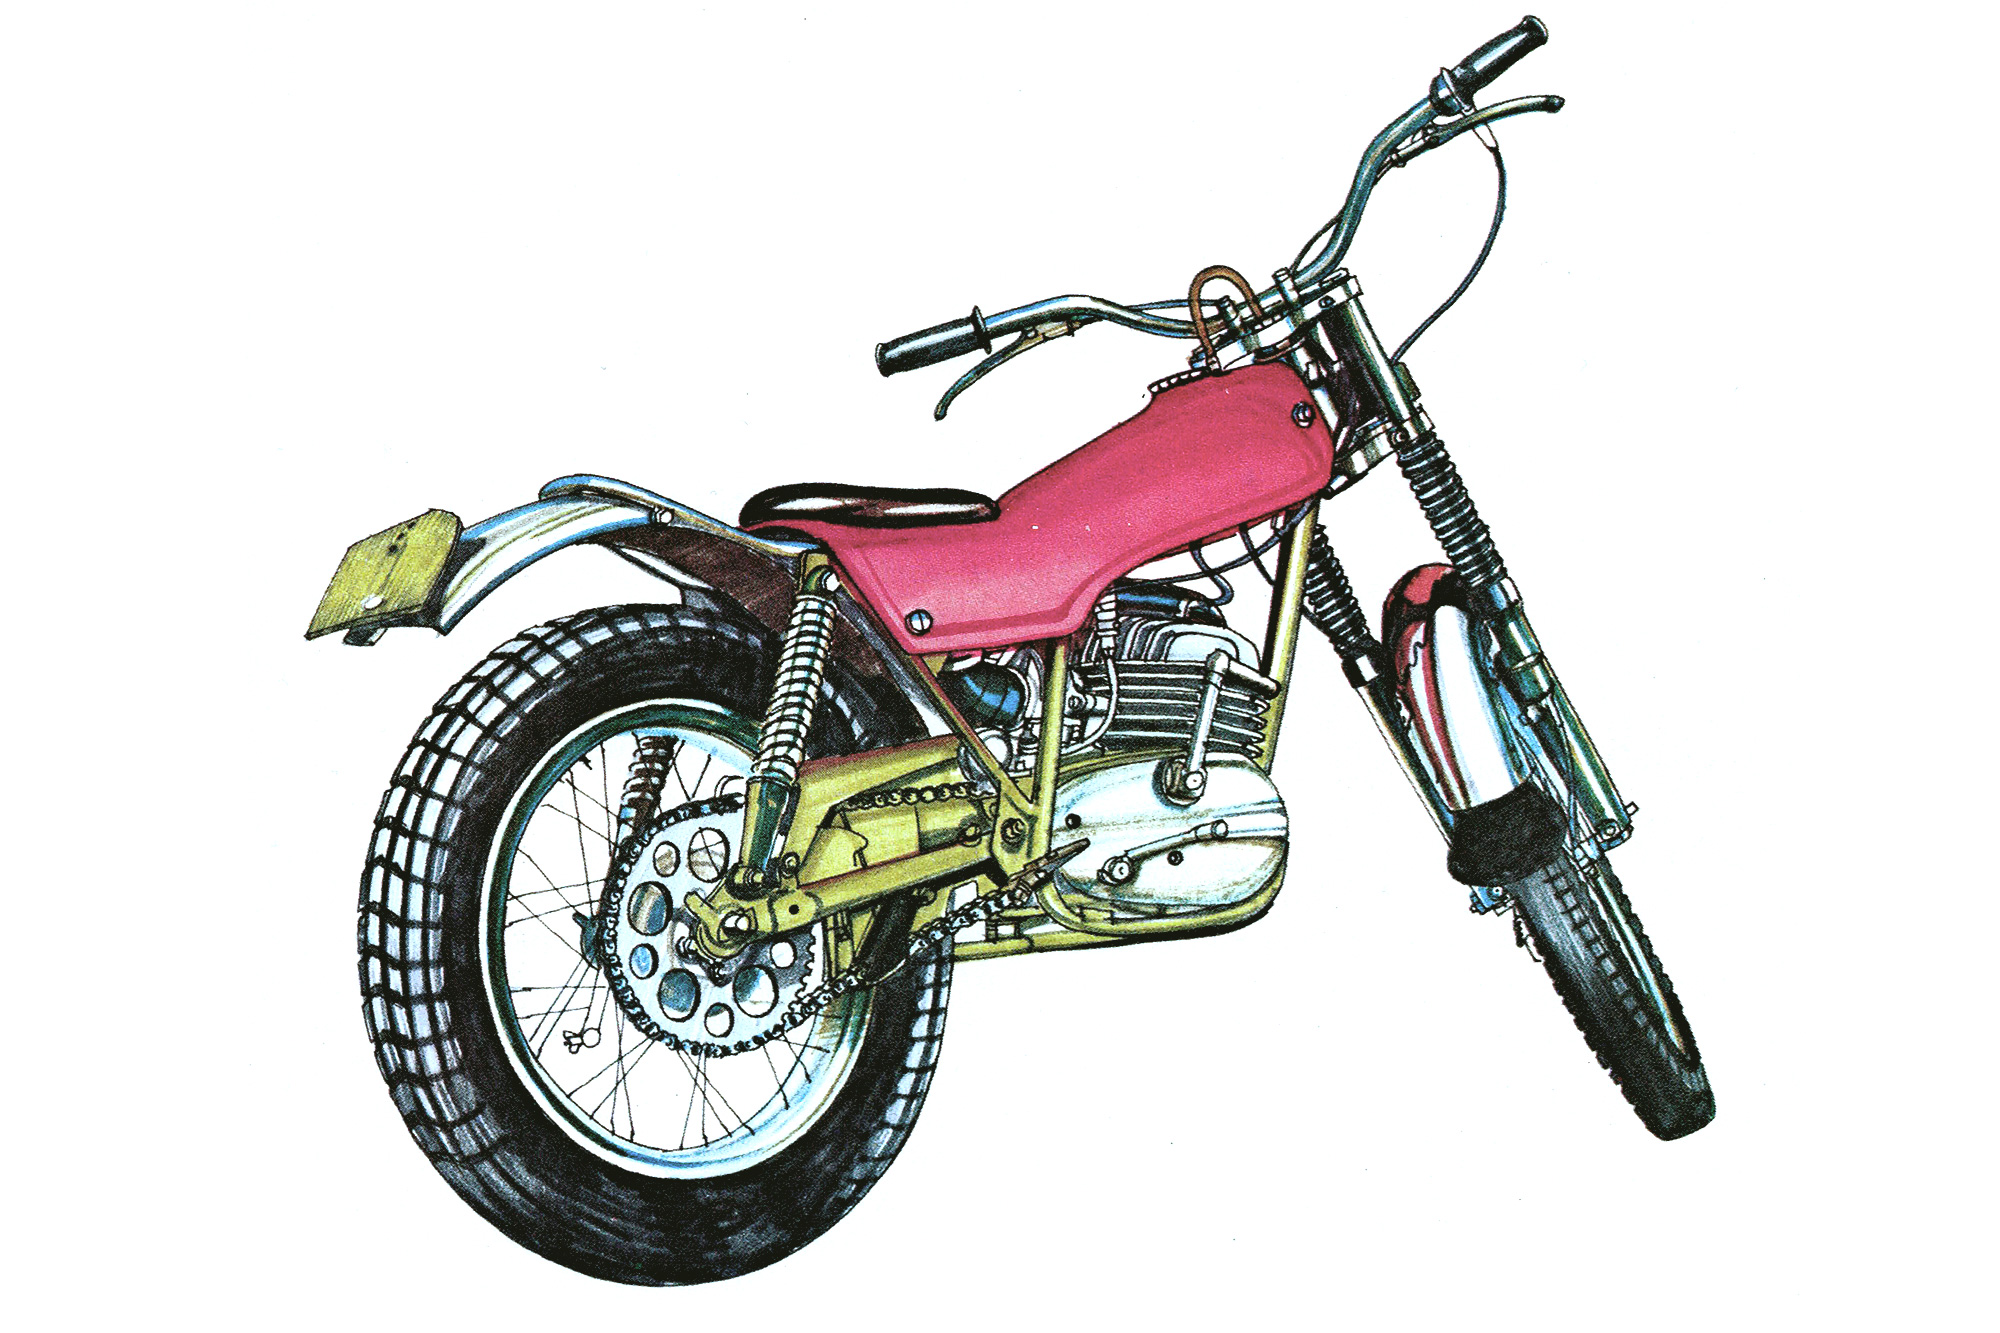 An illustration of a 1970s pink sporting trials motorcycle